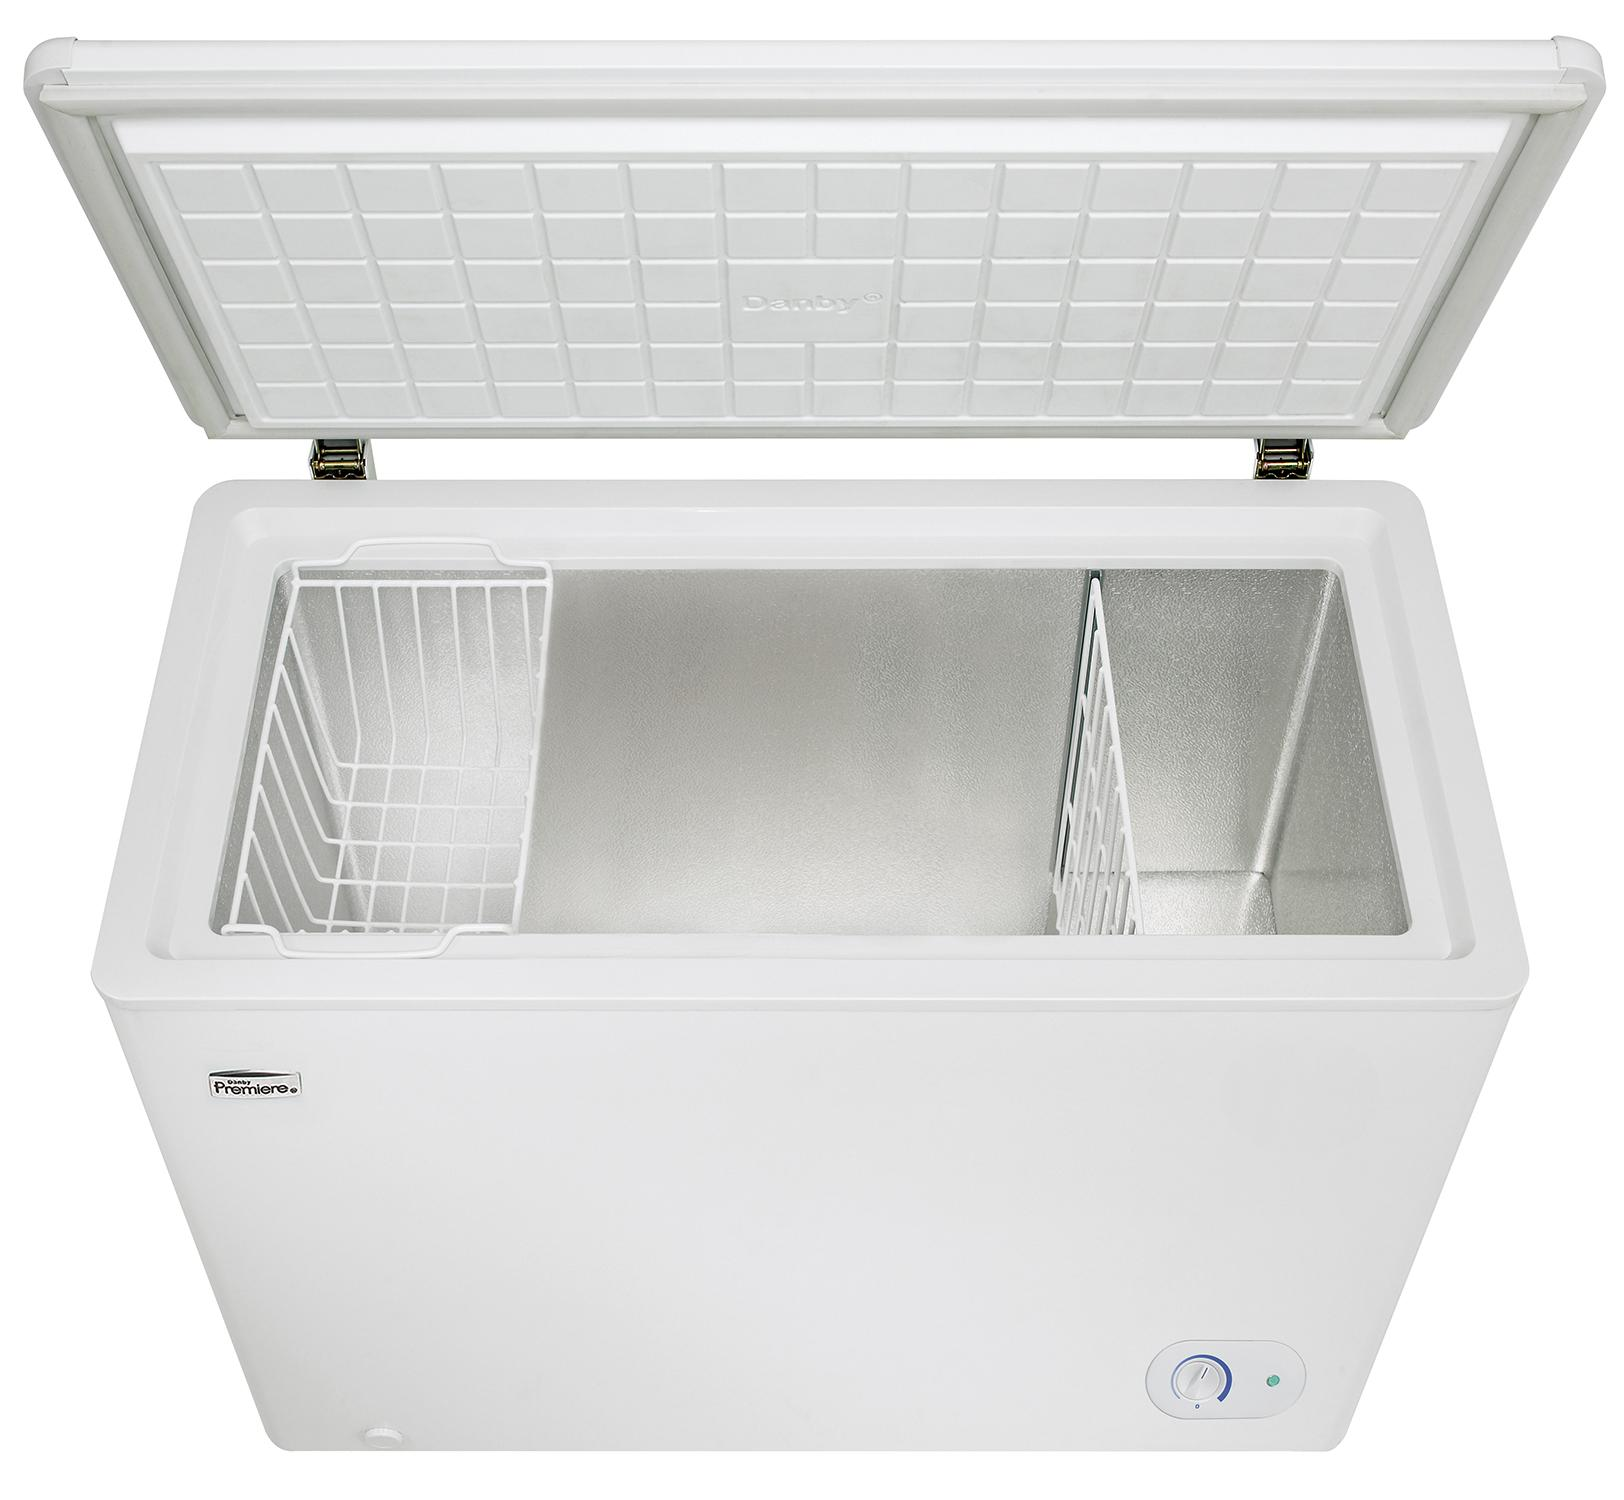 d4141dec 75f2 46cd ab53 fee7bbc9bdc5._CB309475107_ amazon com danby dcf072a2wdb1 chest freezer, 7 2 cubic feet  at readyjetset.co